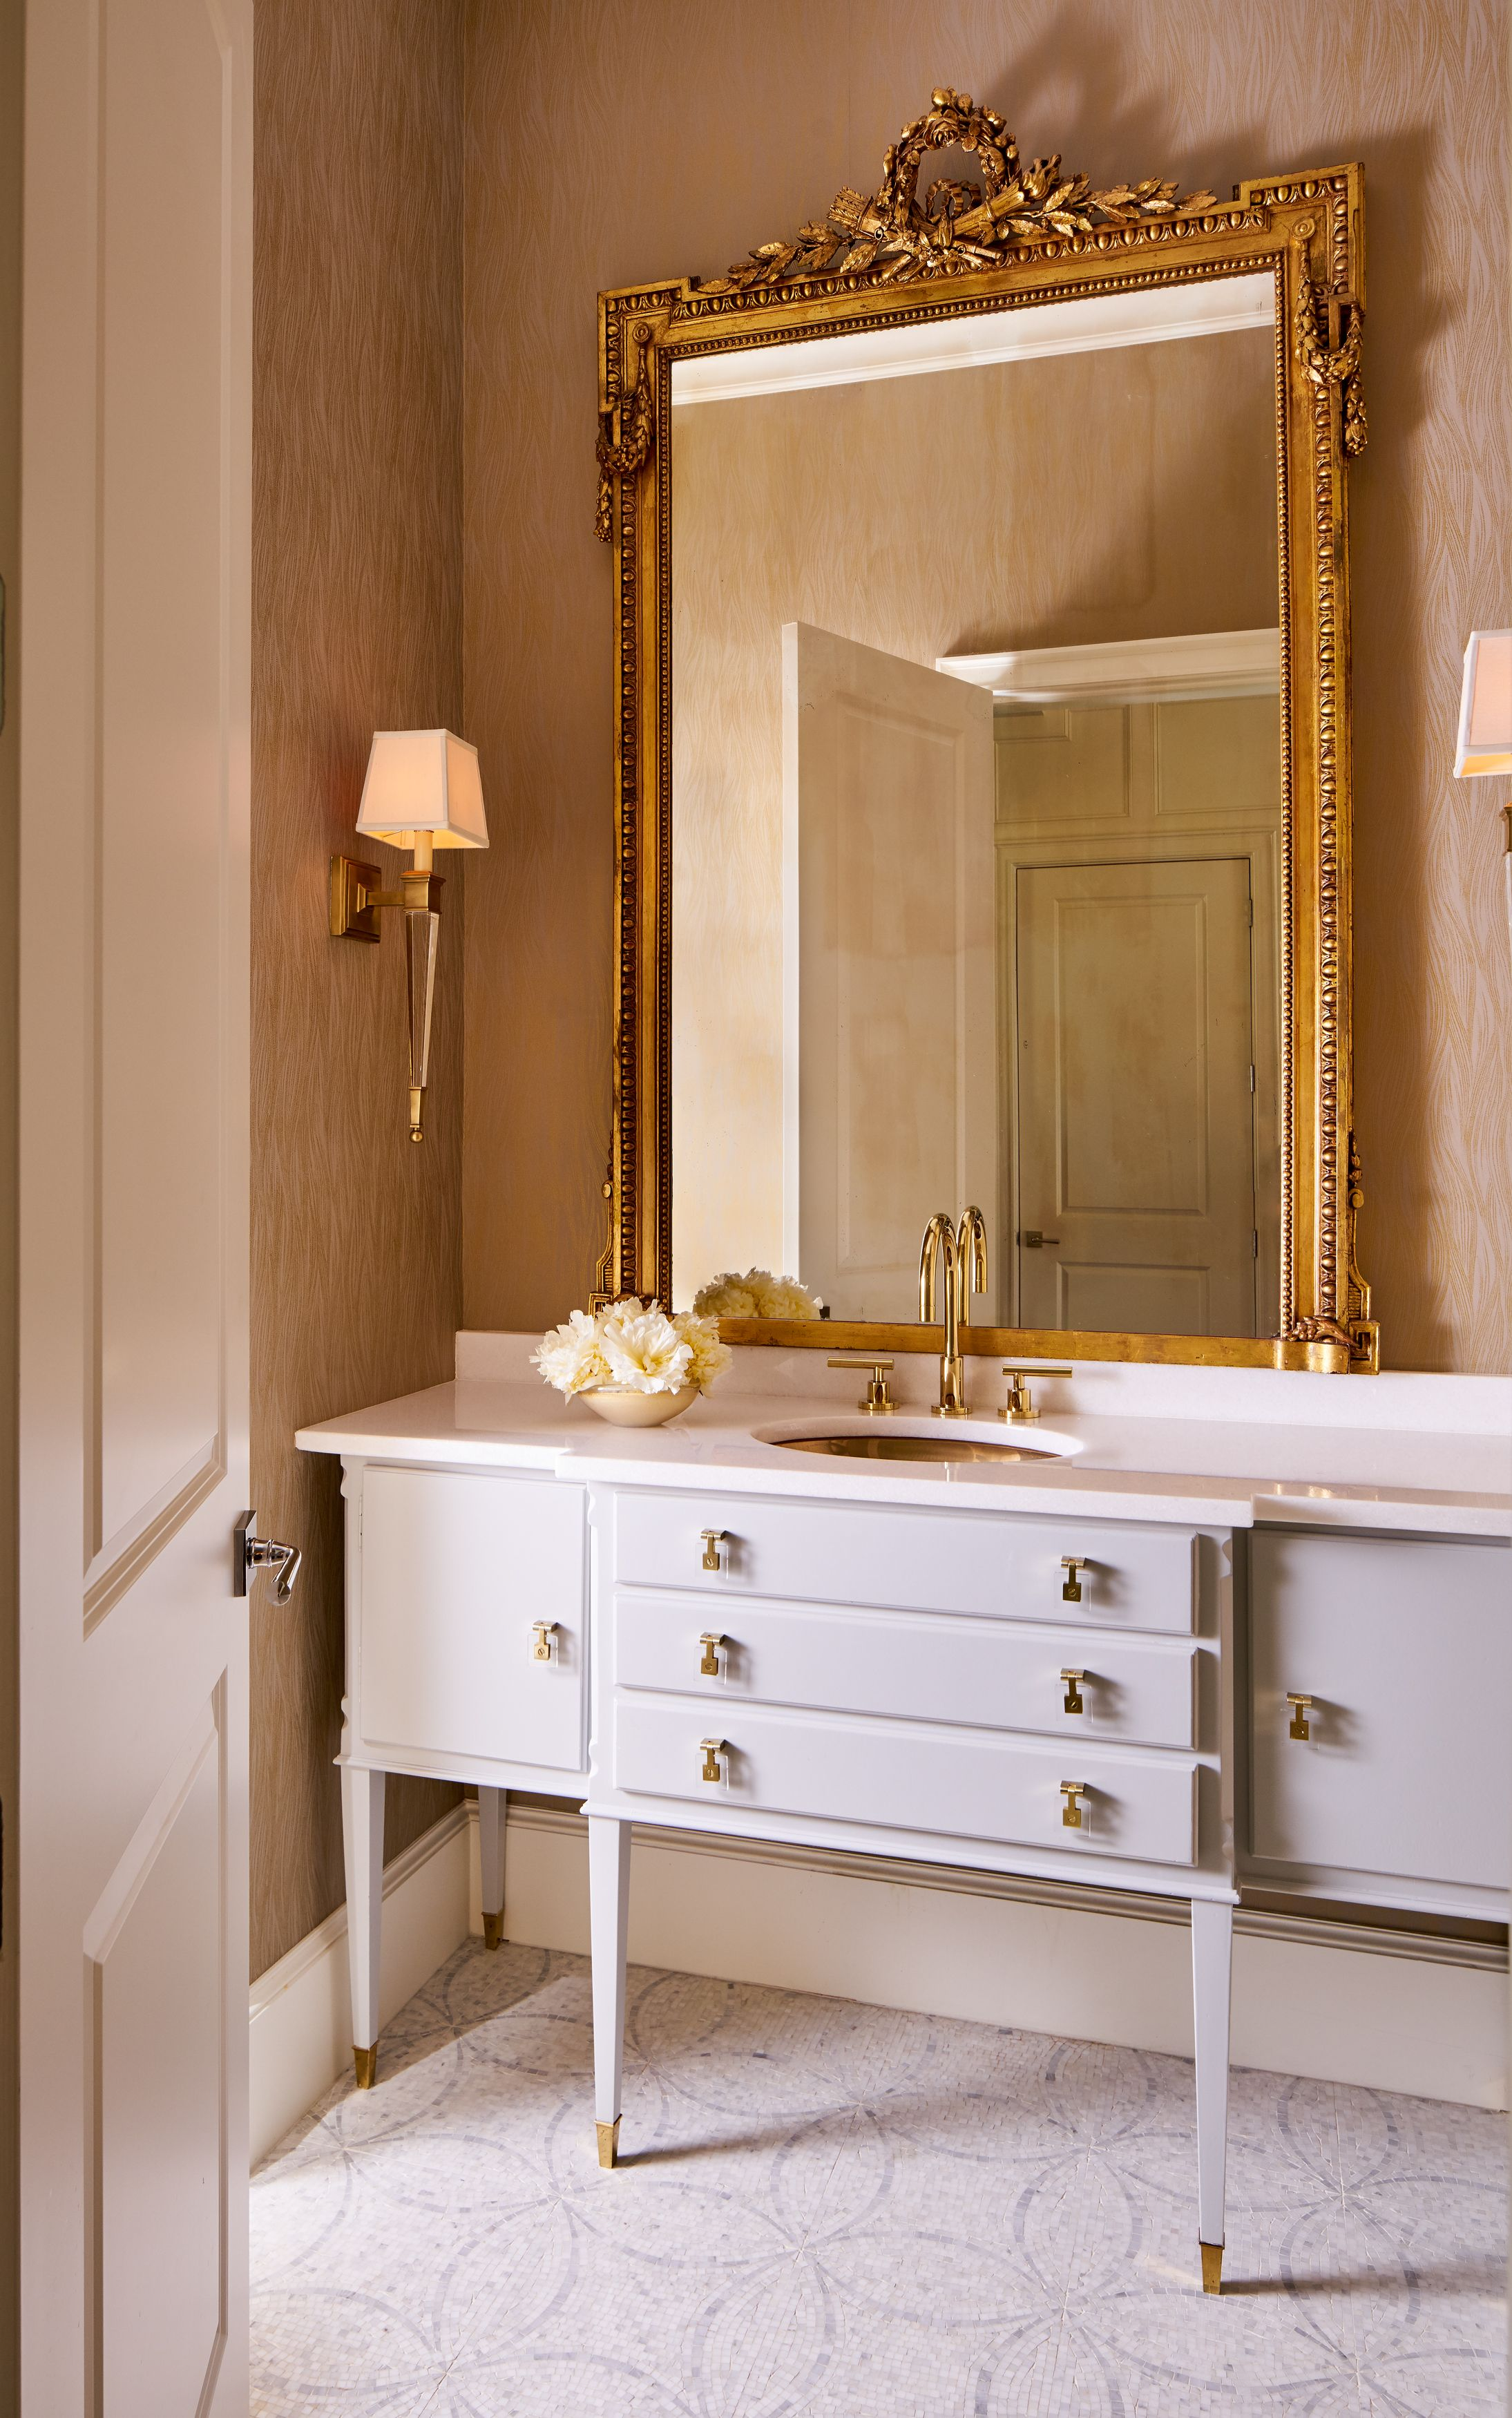 Superb Bathroom Sinks Dallas Part - 9: Designed By Denise McGaha Interiors. Photographed By Stephen Karlisch. # Dallas #interiordesign # · Bathroom SinksDallasTexasMirrorsVanity ...